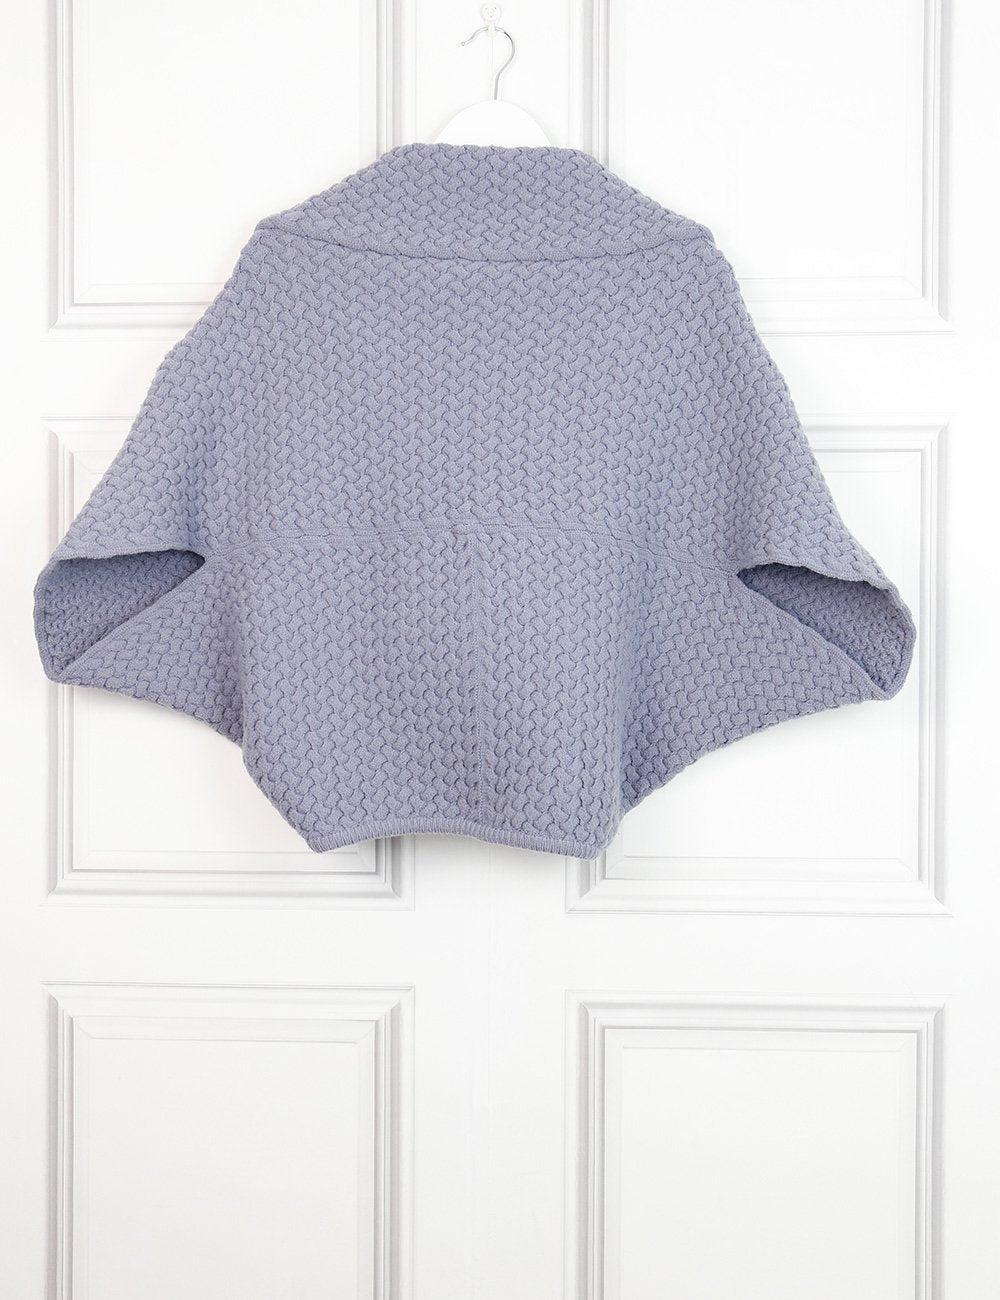 Alaia lavender woollen bolero jacket 12 UK- My Wardrobe Mistakes